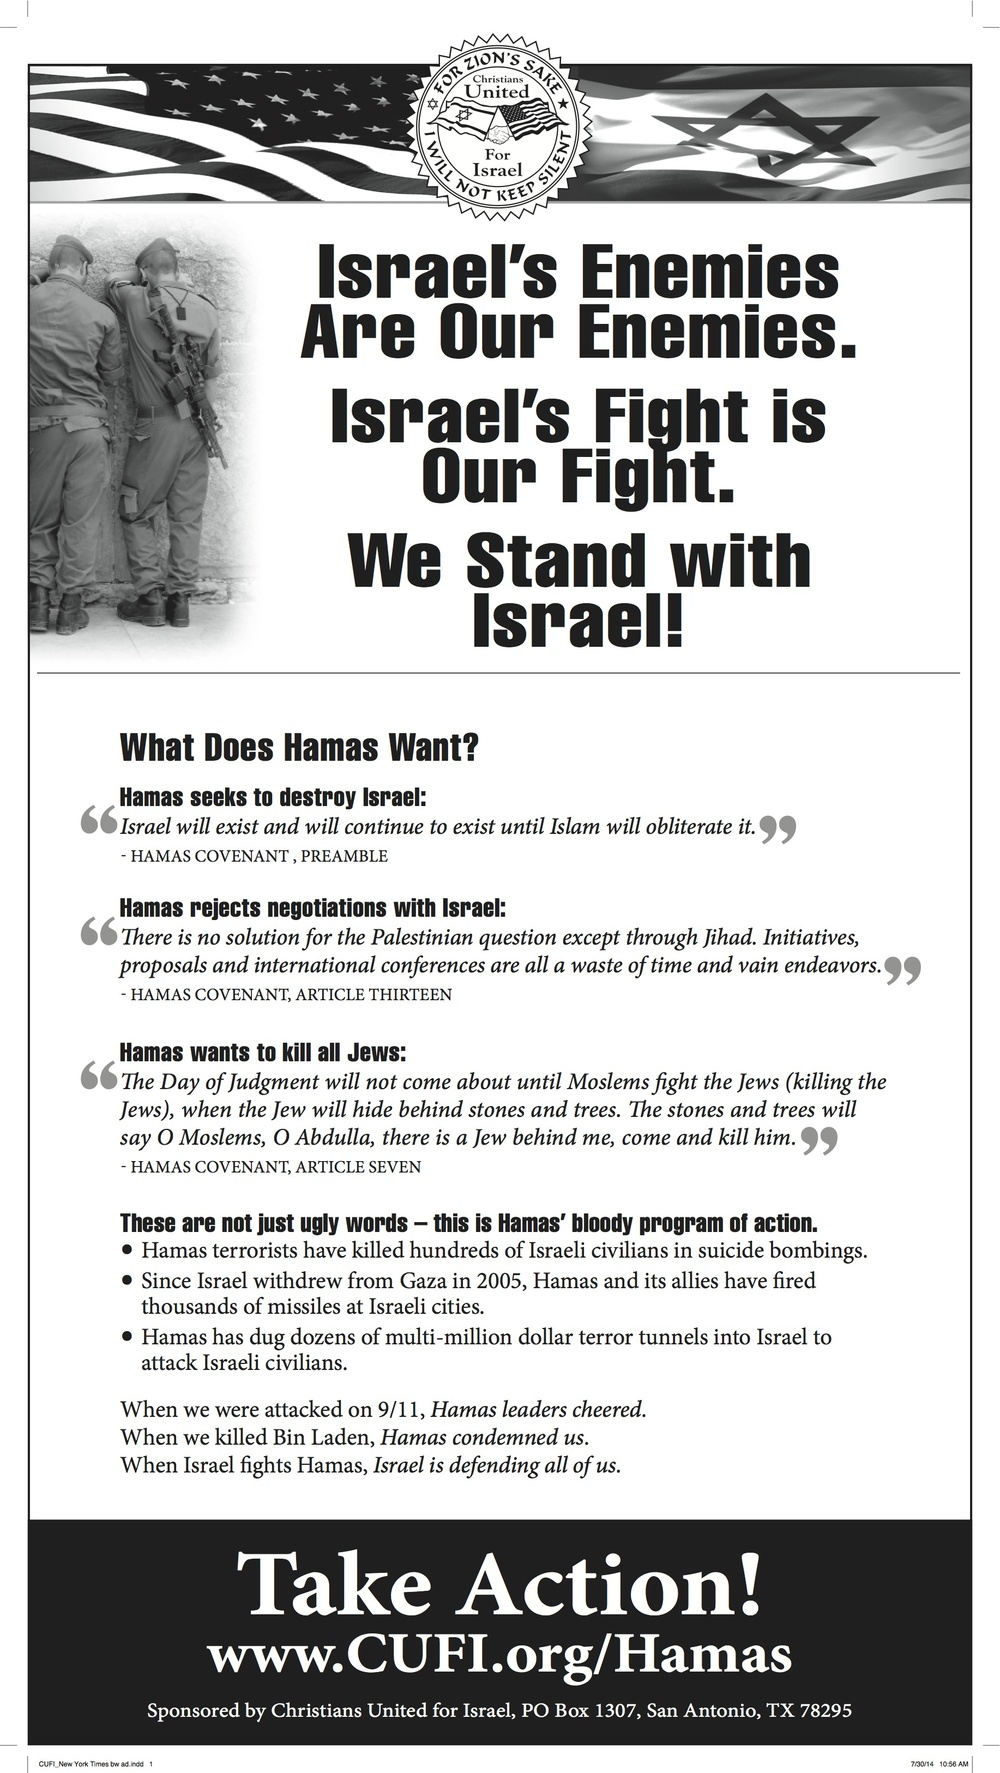 The new Christians United for Israel (CUFI) ad on Hamas. Credit: CUFI.